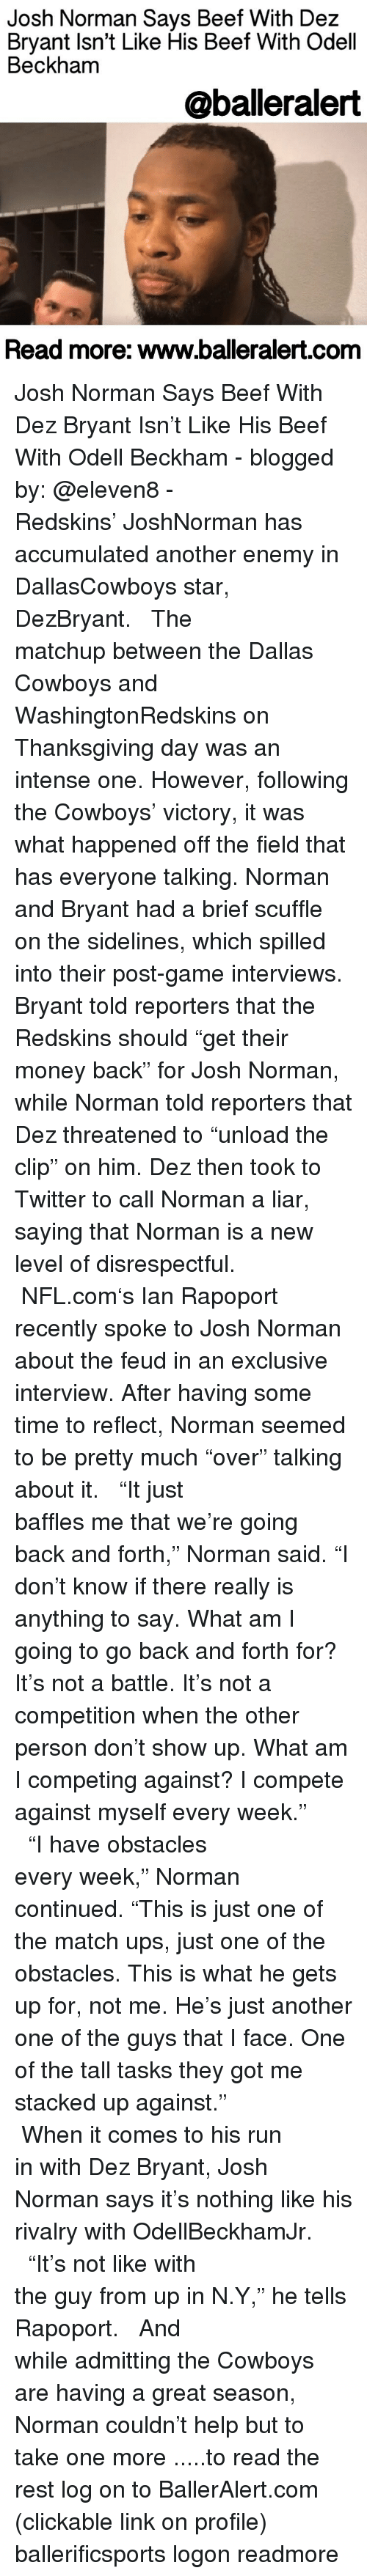 funny post gainterviews memes of on interviewer another one another one and beef josh norman says beef dez bryant